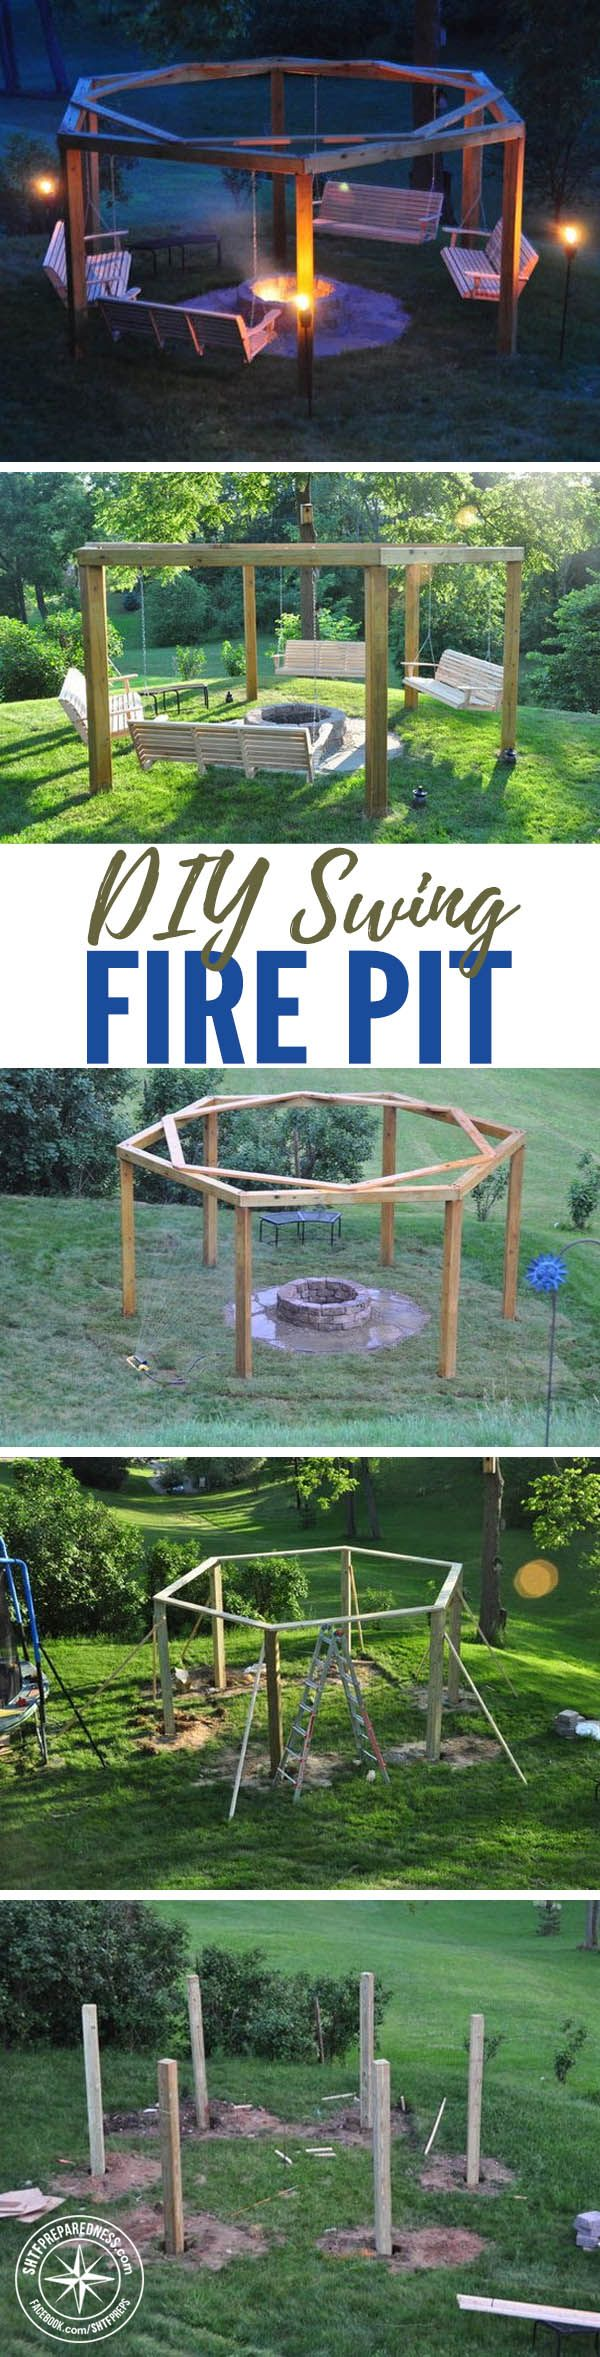 How To Build The Best DIY Fire Pit EVER! I love a nice warm fire during the cooler Fall days... Fire pit time! You can just spend 100 bucks or so on a boring ready made metal fire pit or you can spend just a little more and have the best of all fire pit entertainment areas... ever.